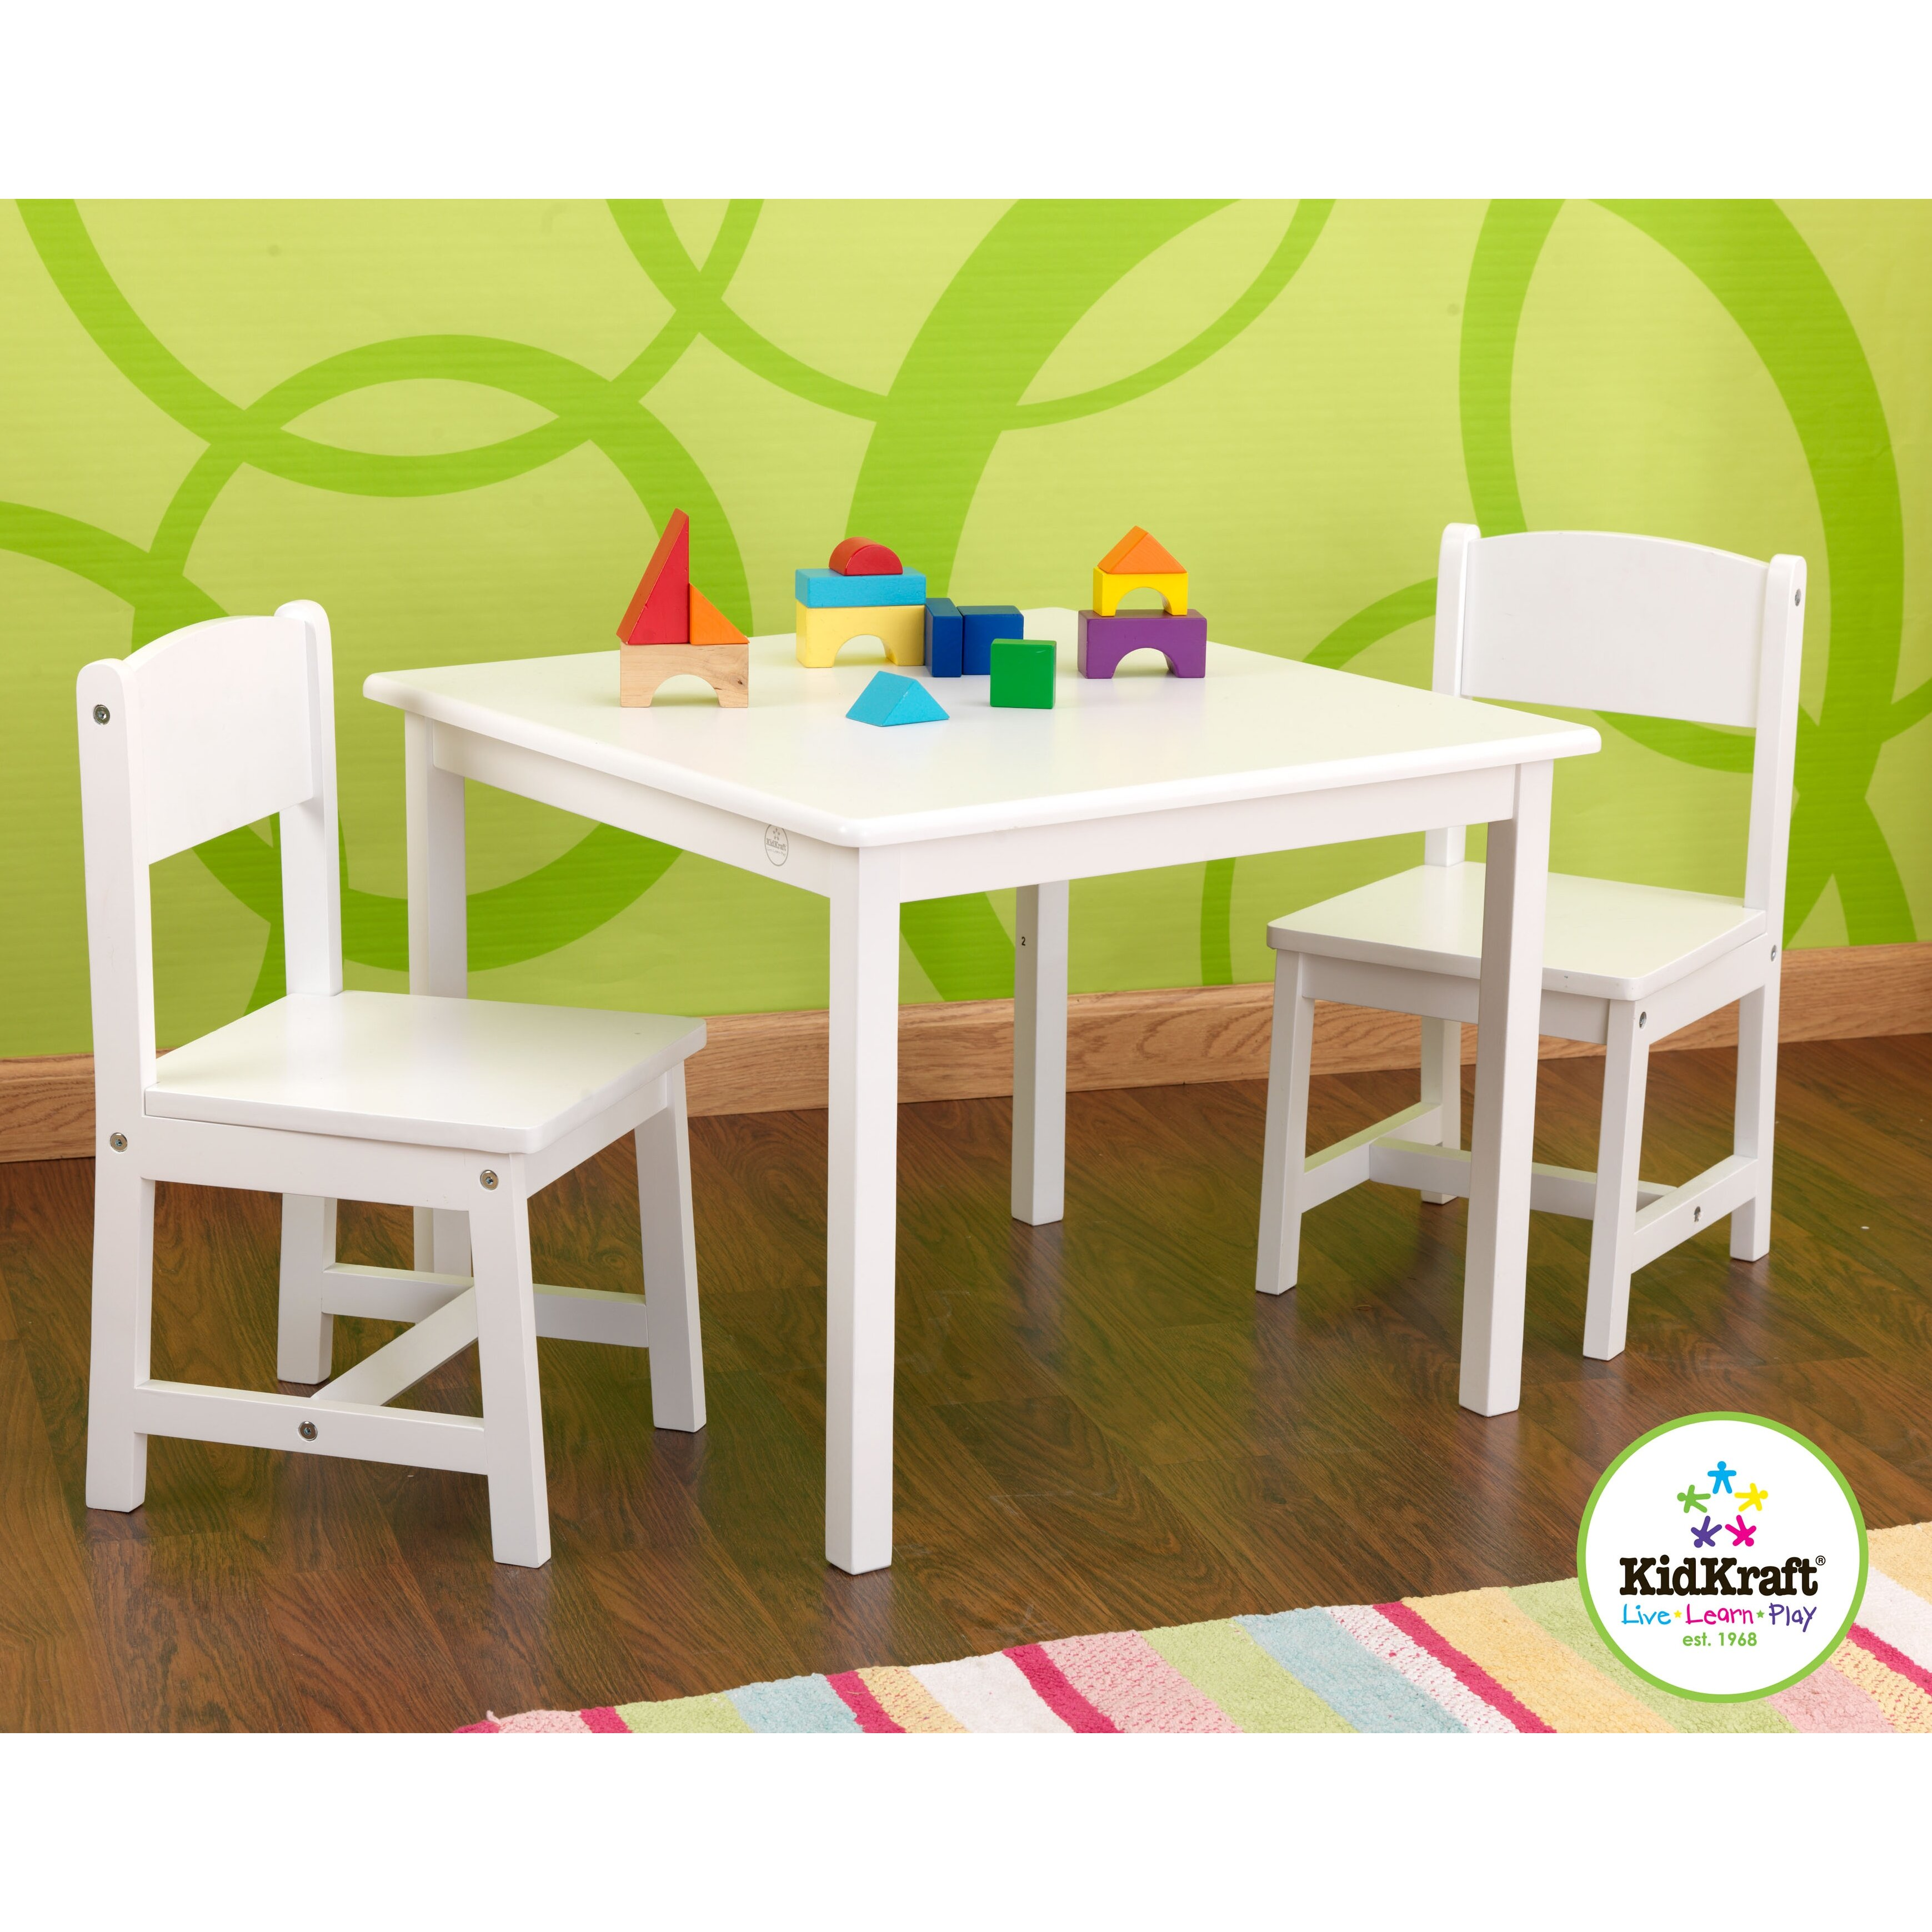 KidKraft Aspen Kids 3 Piece Table and Chair Set Reviews – Aspen Chair